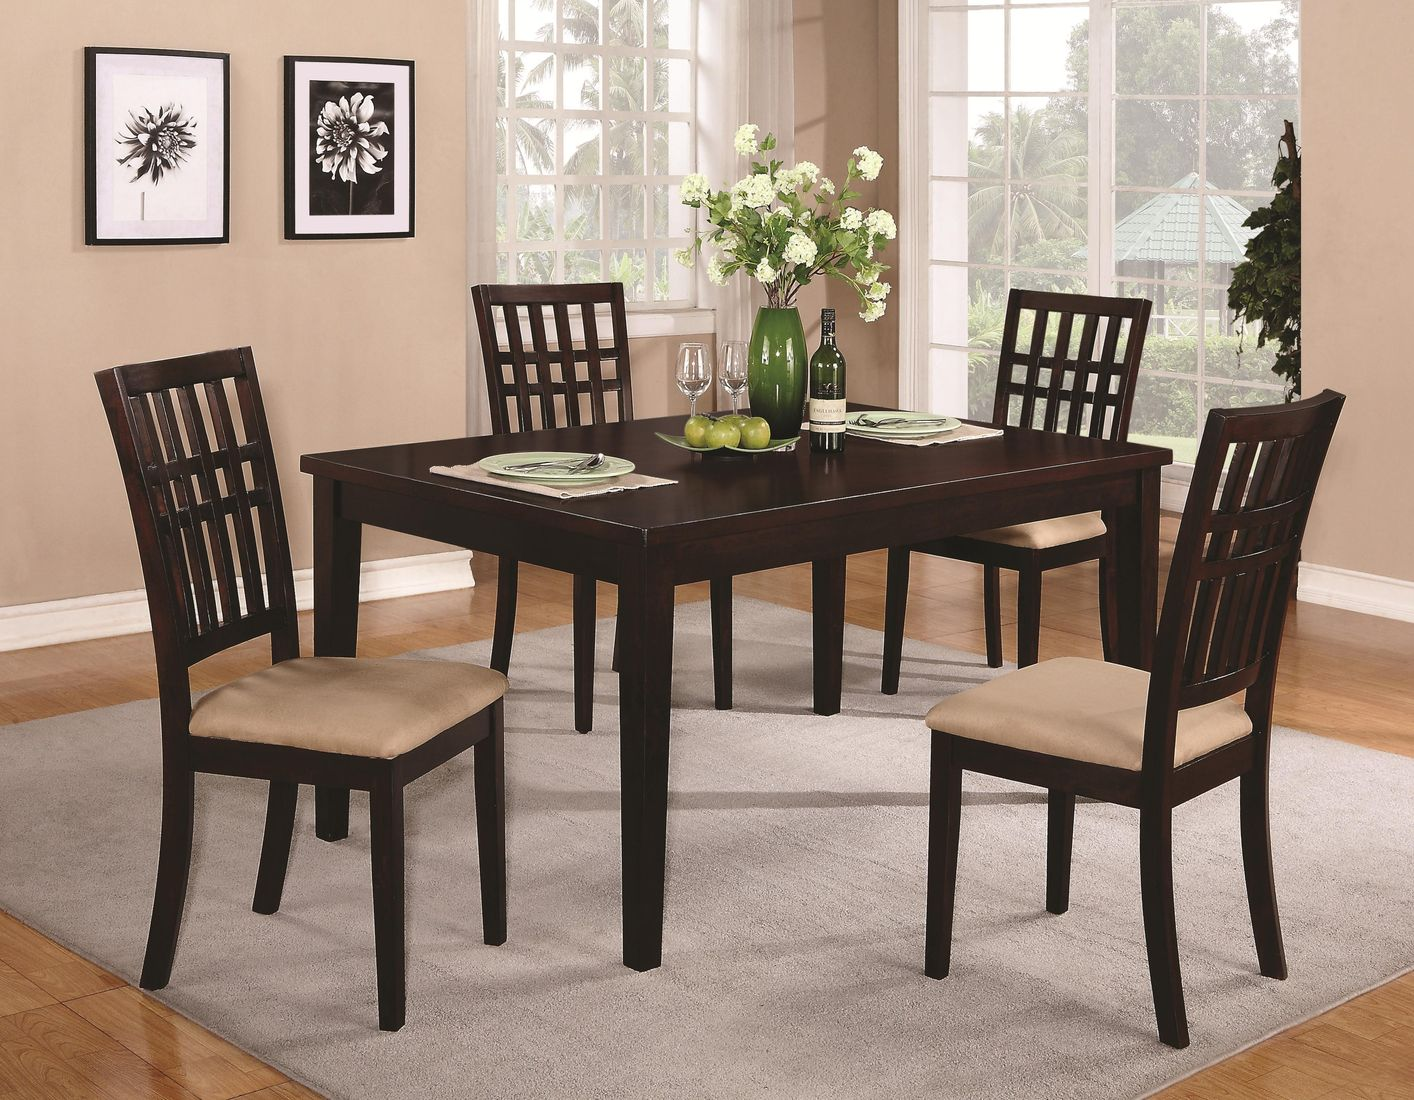 brandt dark cherry wood dining table - Wooden Dining Table And Chairs